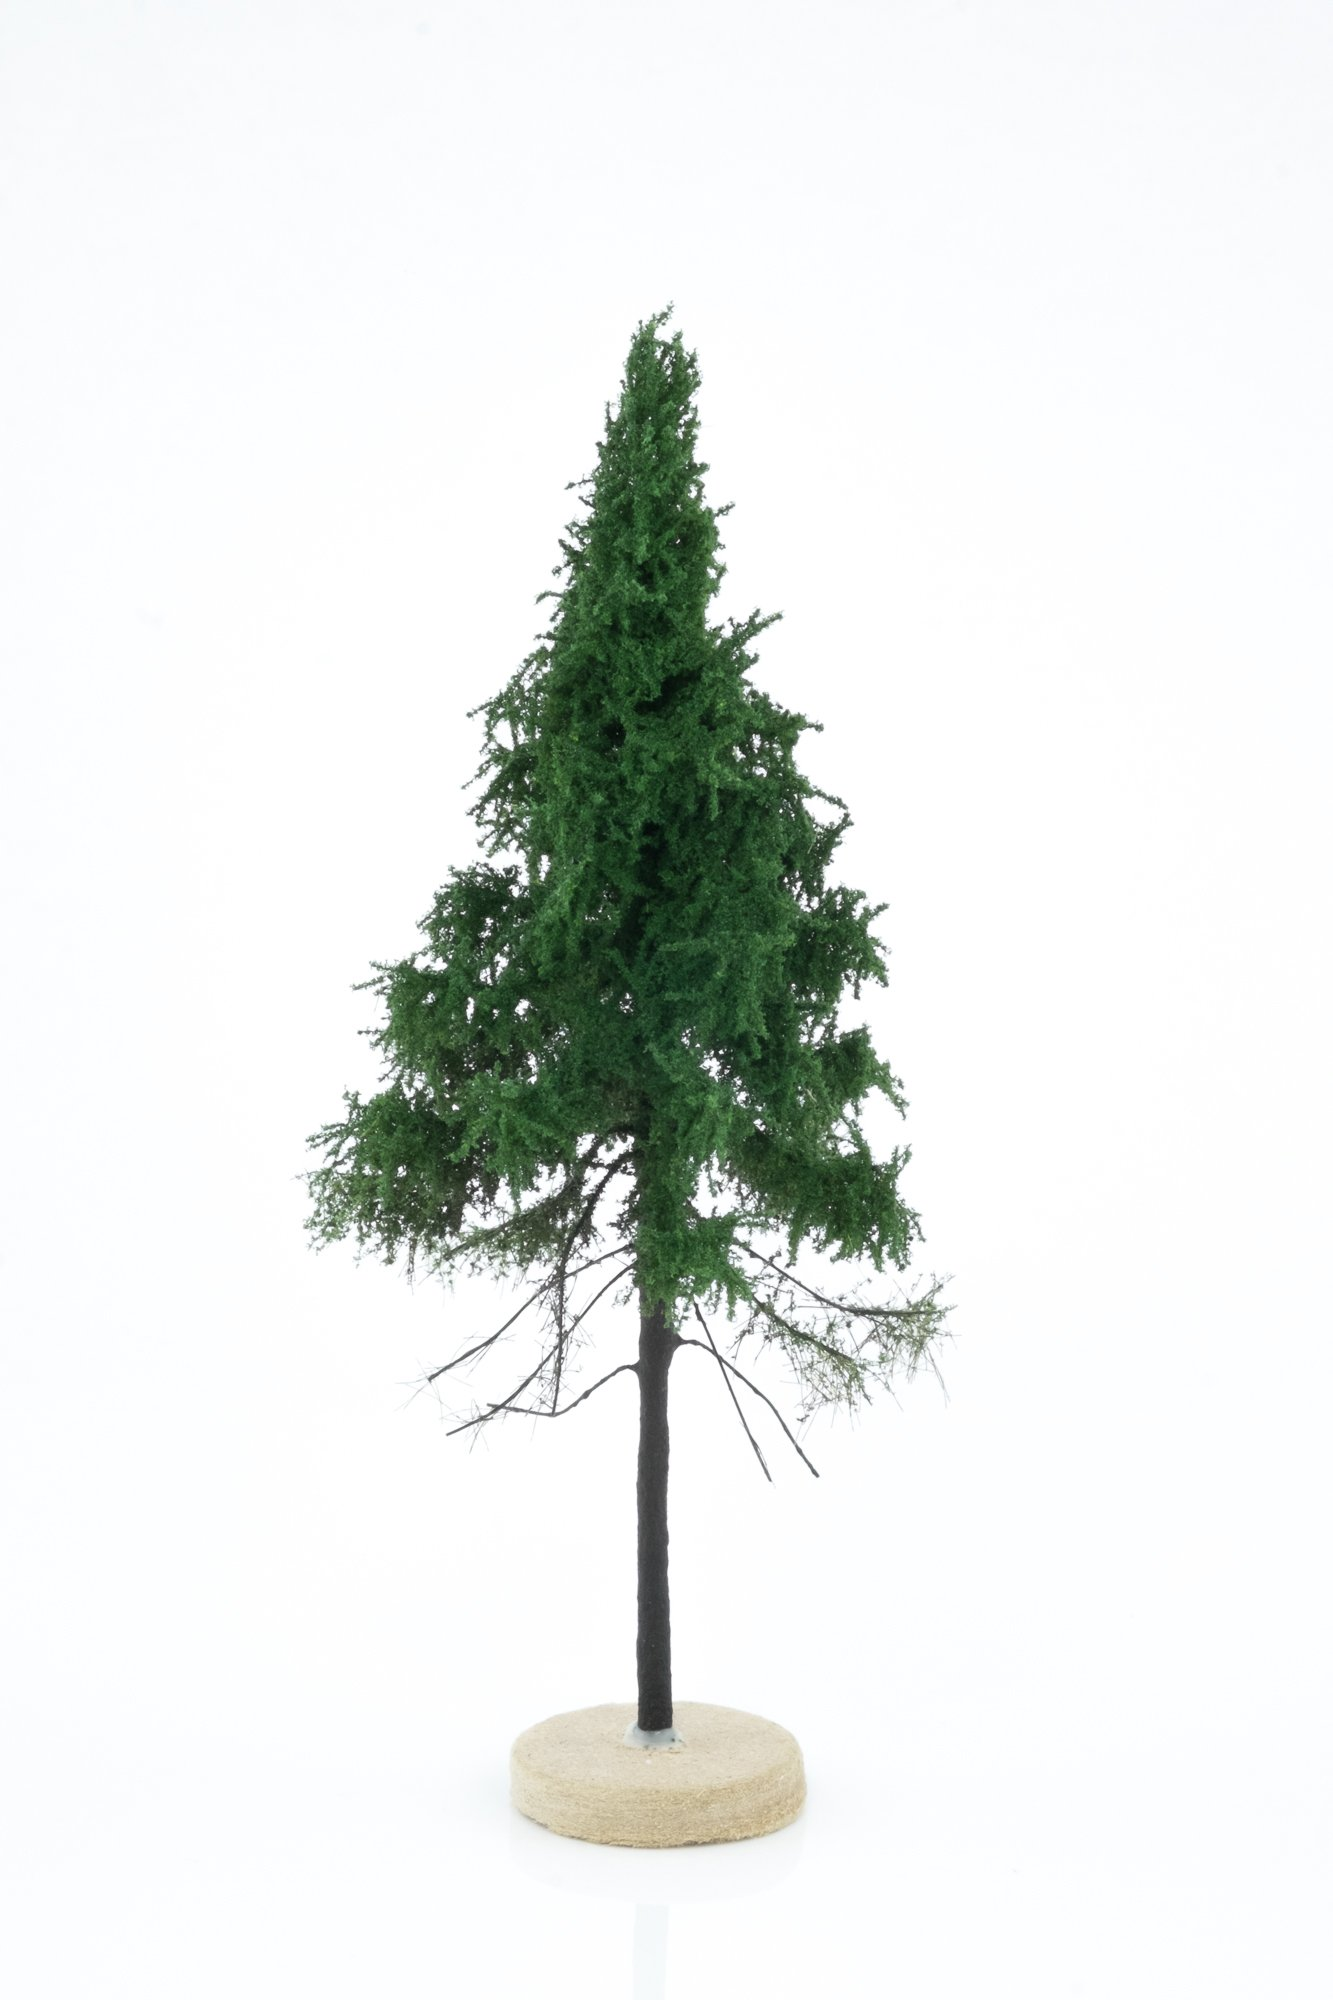 Hand-made, green, forest spruce tree model. Size between 14 and 16 cm. Made from high quality model supplies by Primo Models.